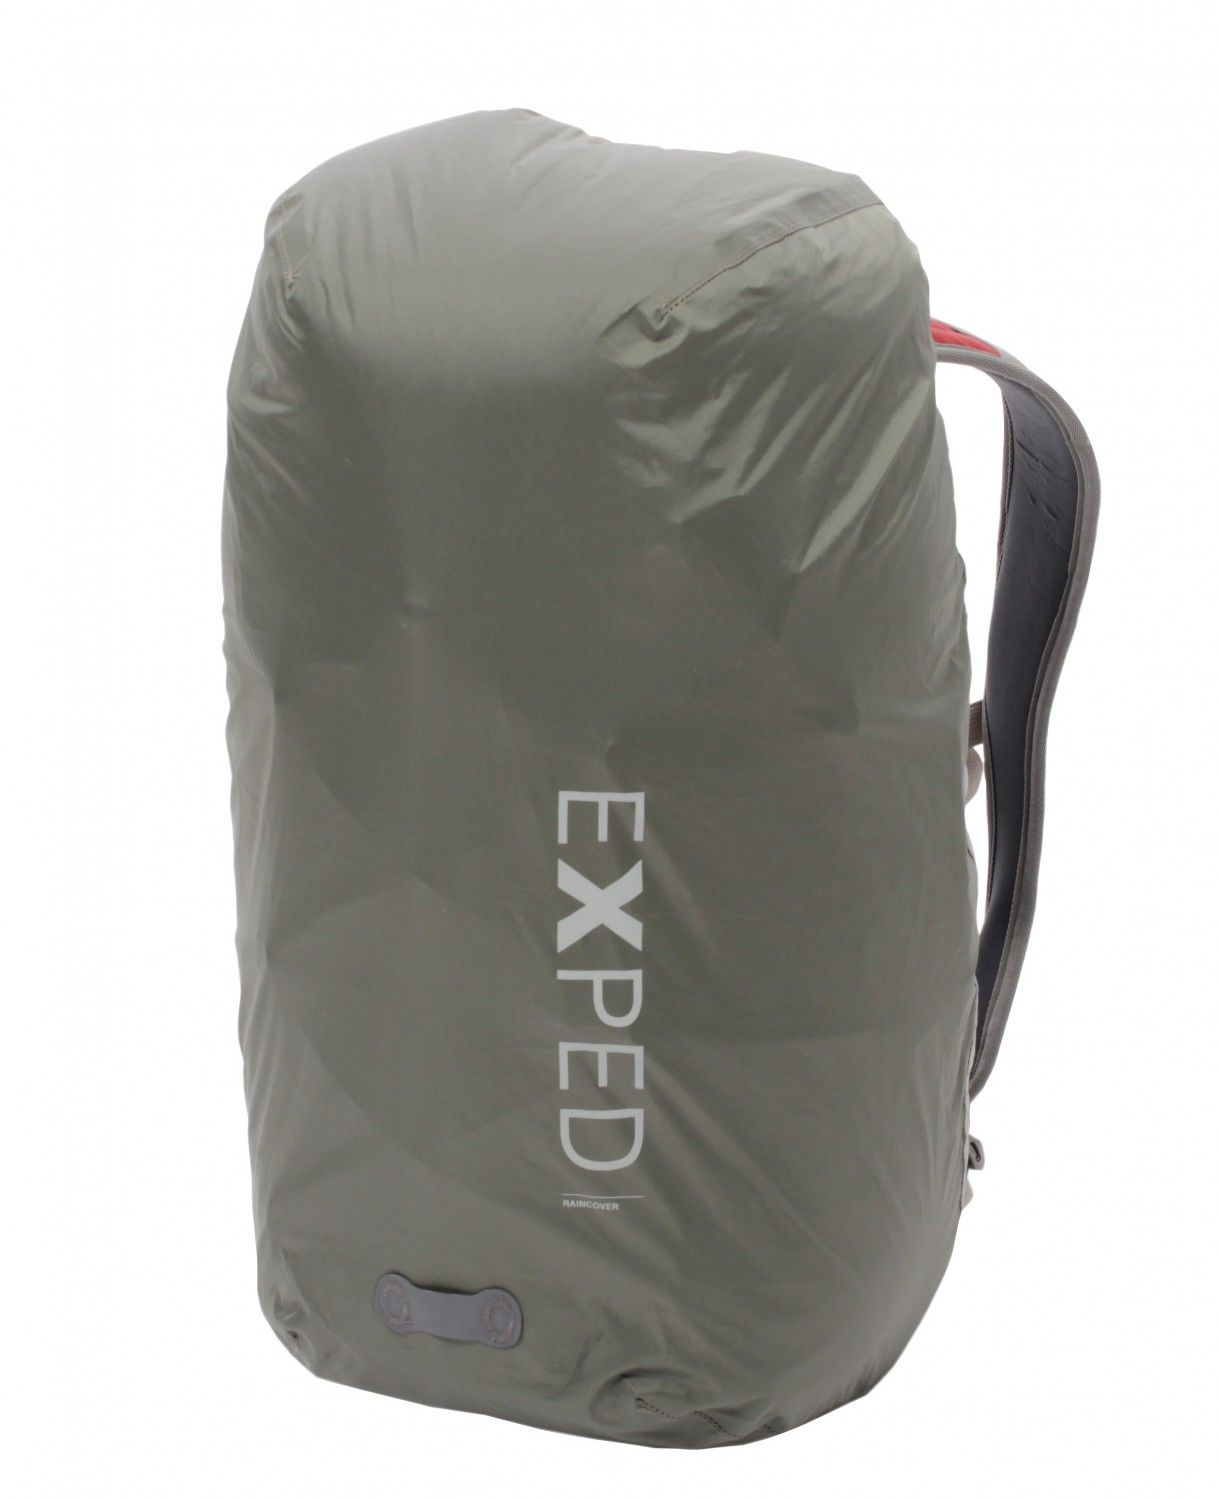 Exped Rain Cover S, Charcoalgrey Grau, 25l